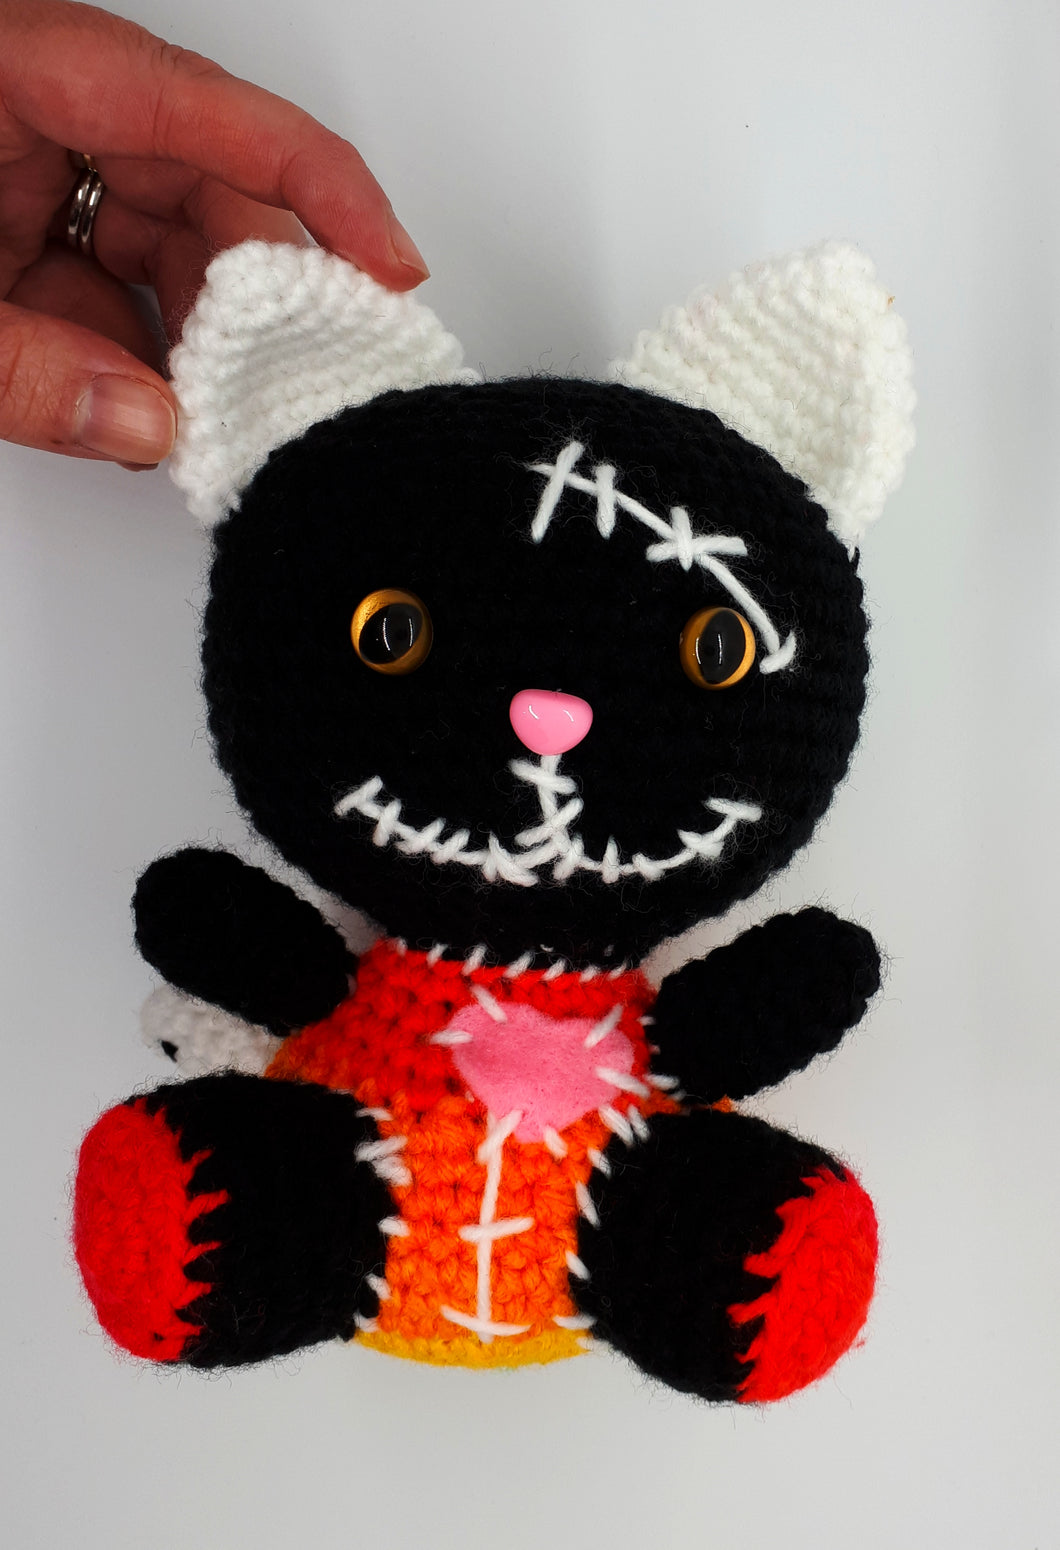 Voodoo Kitty